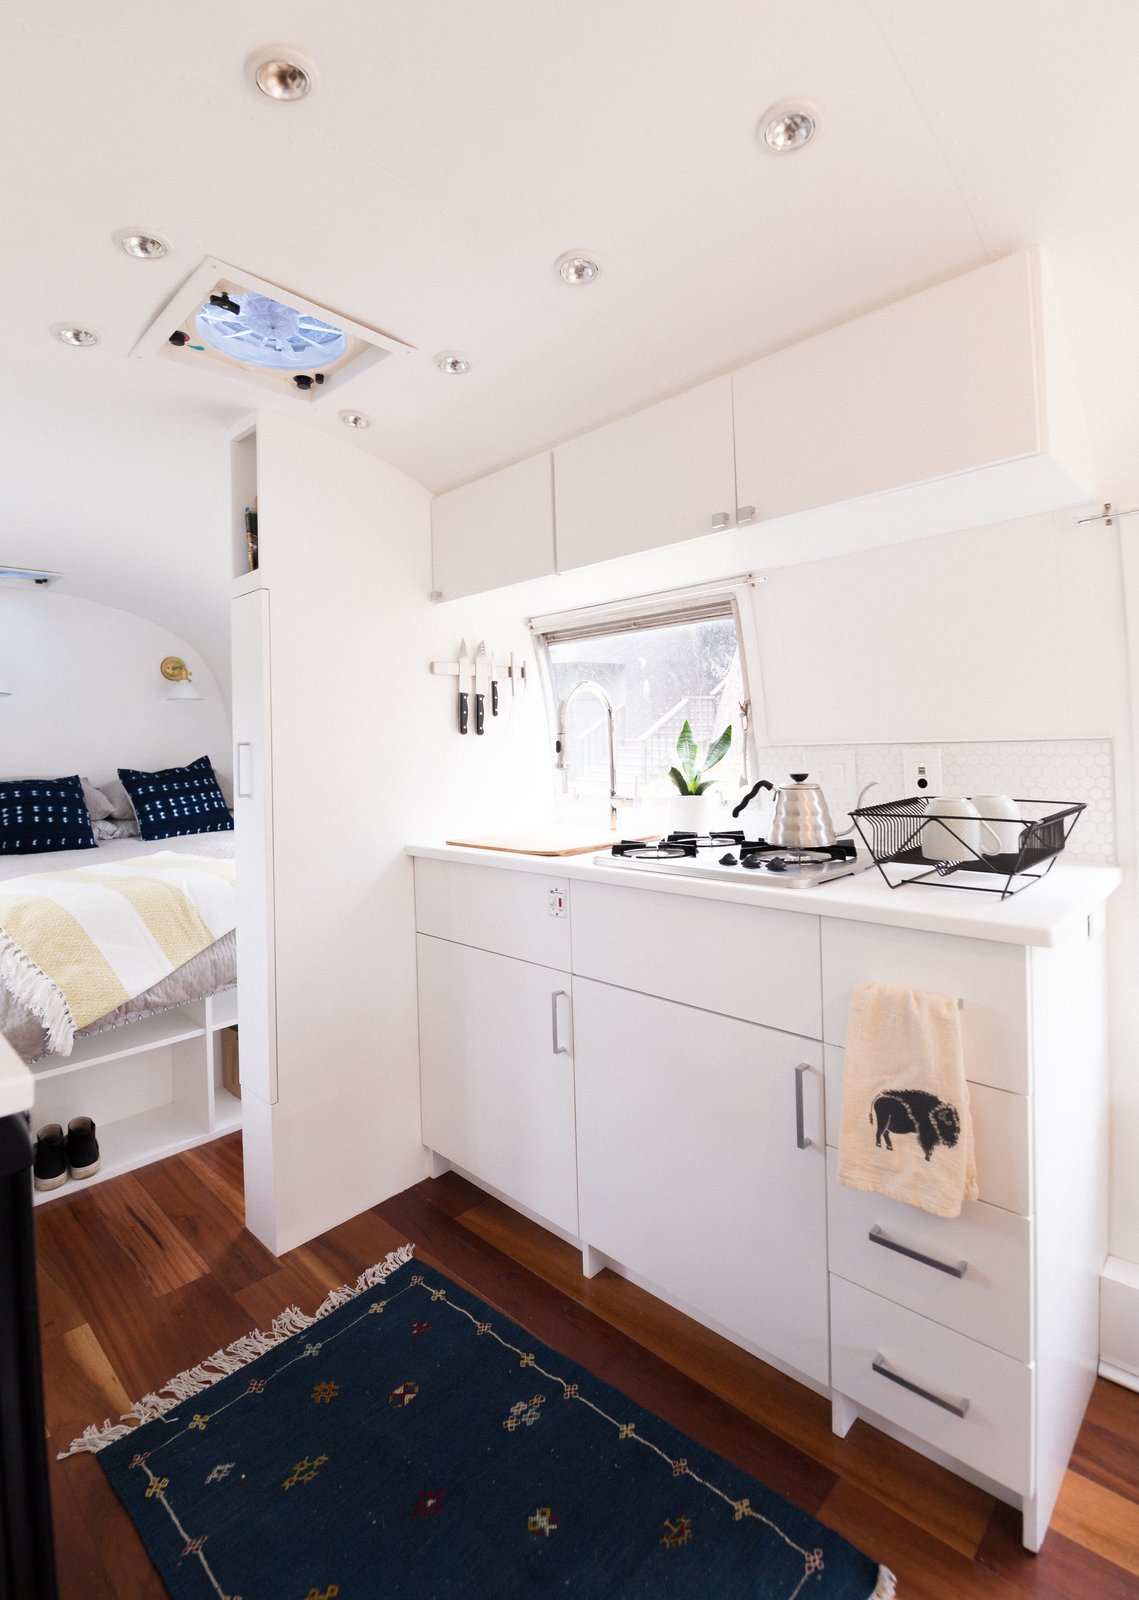 Photo 24 of 25 in See How an Oregon Couple Renovated Their 1966 Airstream